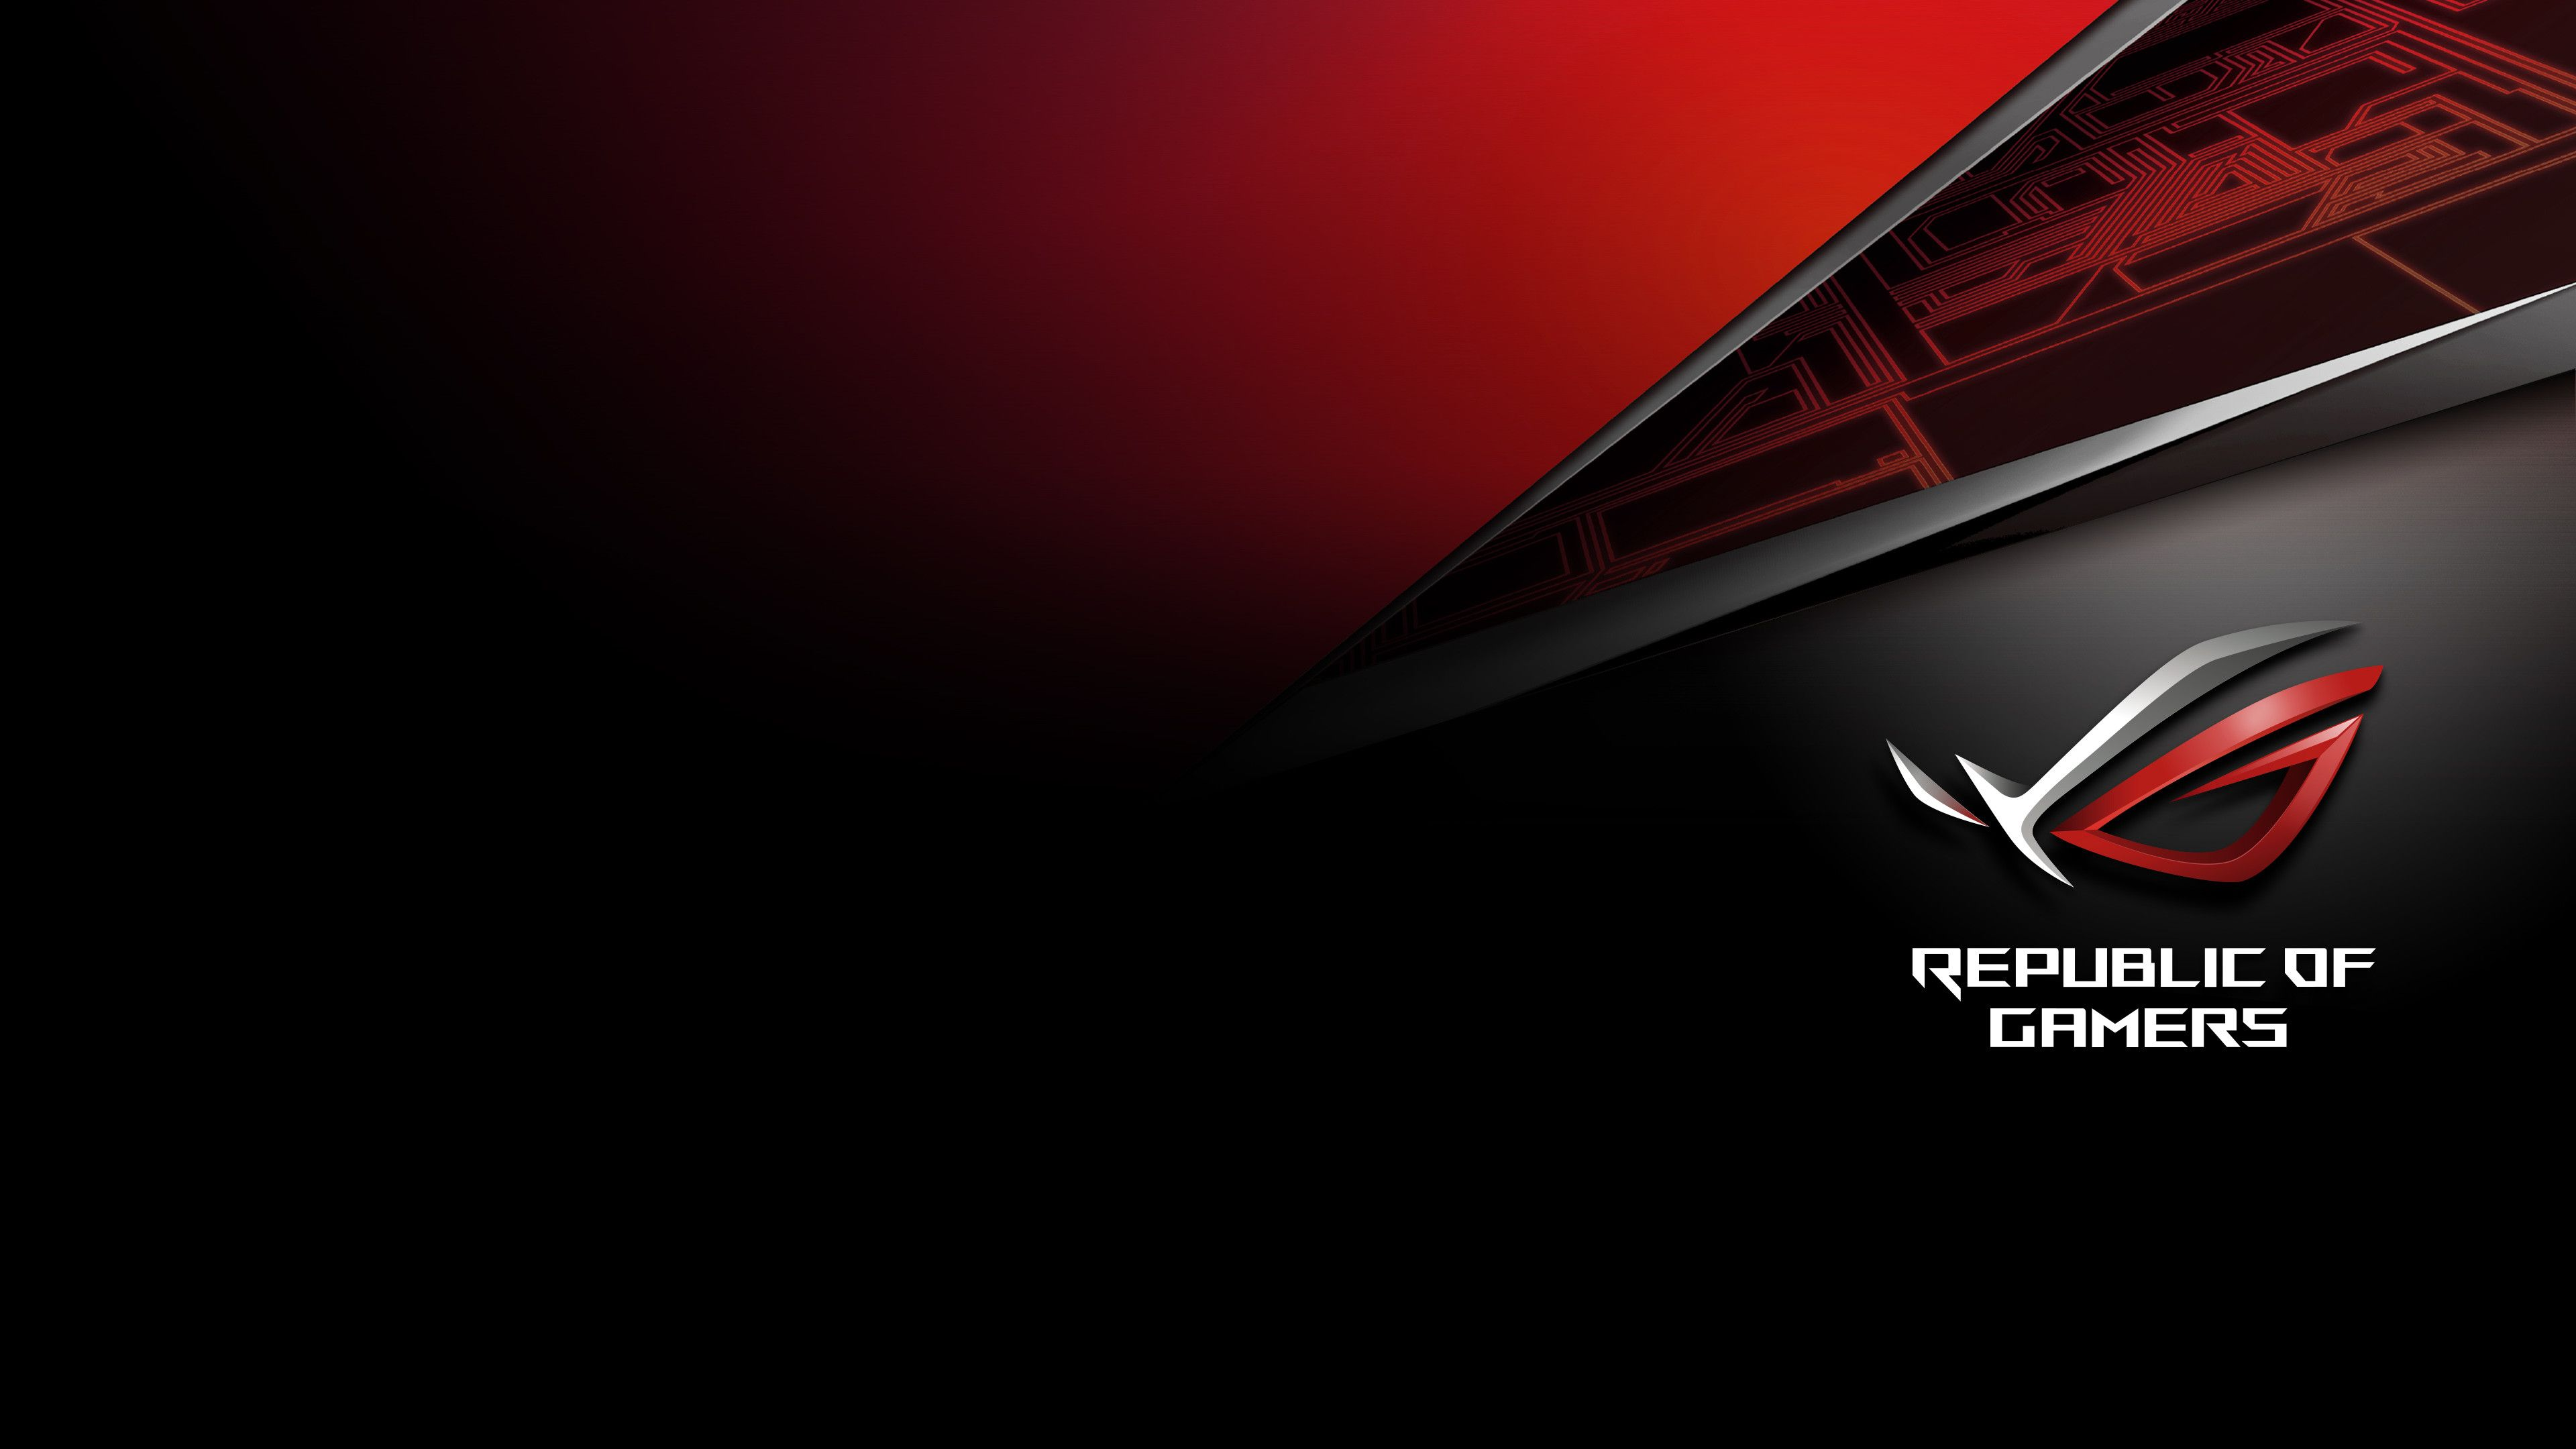 3840x2160 Asus Rog Classic 4k Wallpaper Hd Wallpaper Desktop Laptop Wallpaper Desktop Wallpapers Gaming Wallpapers